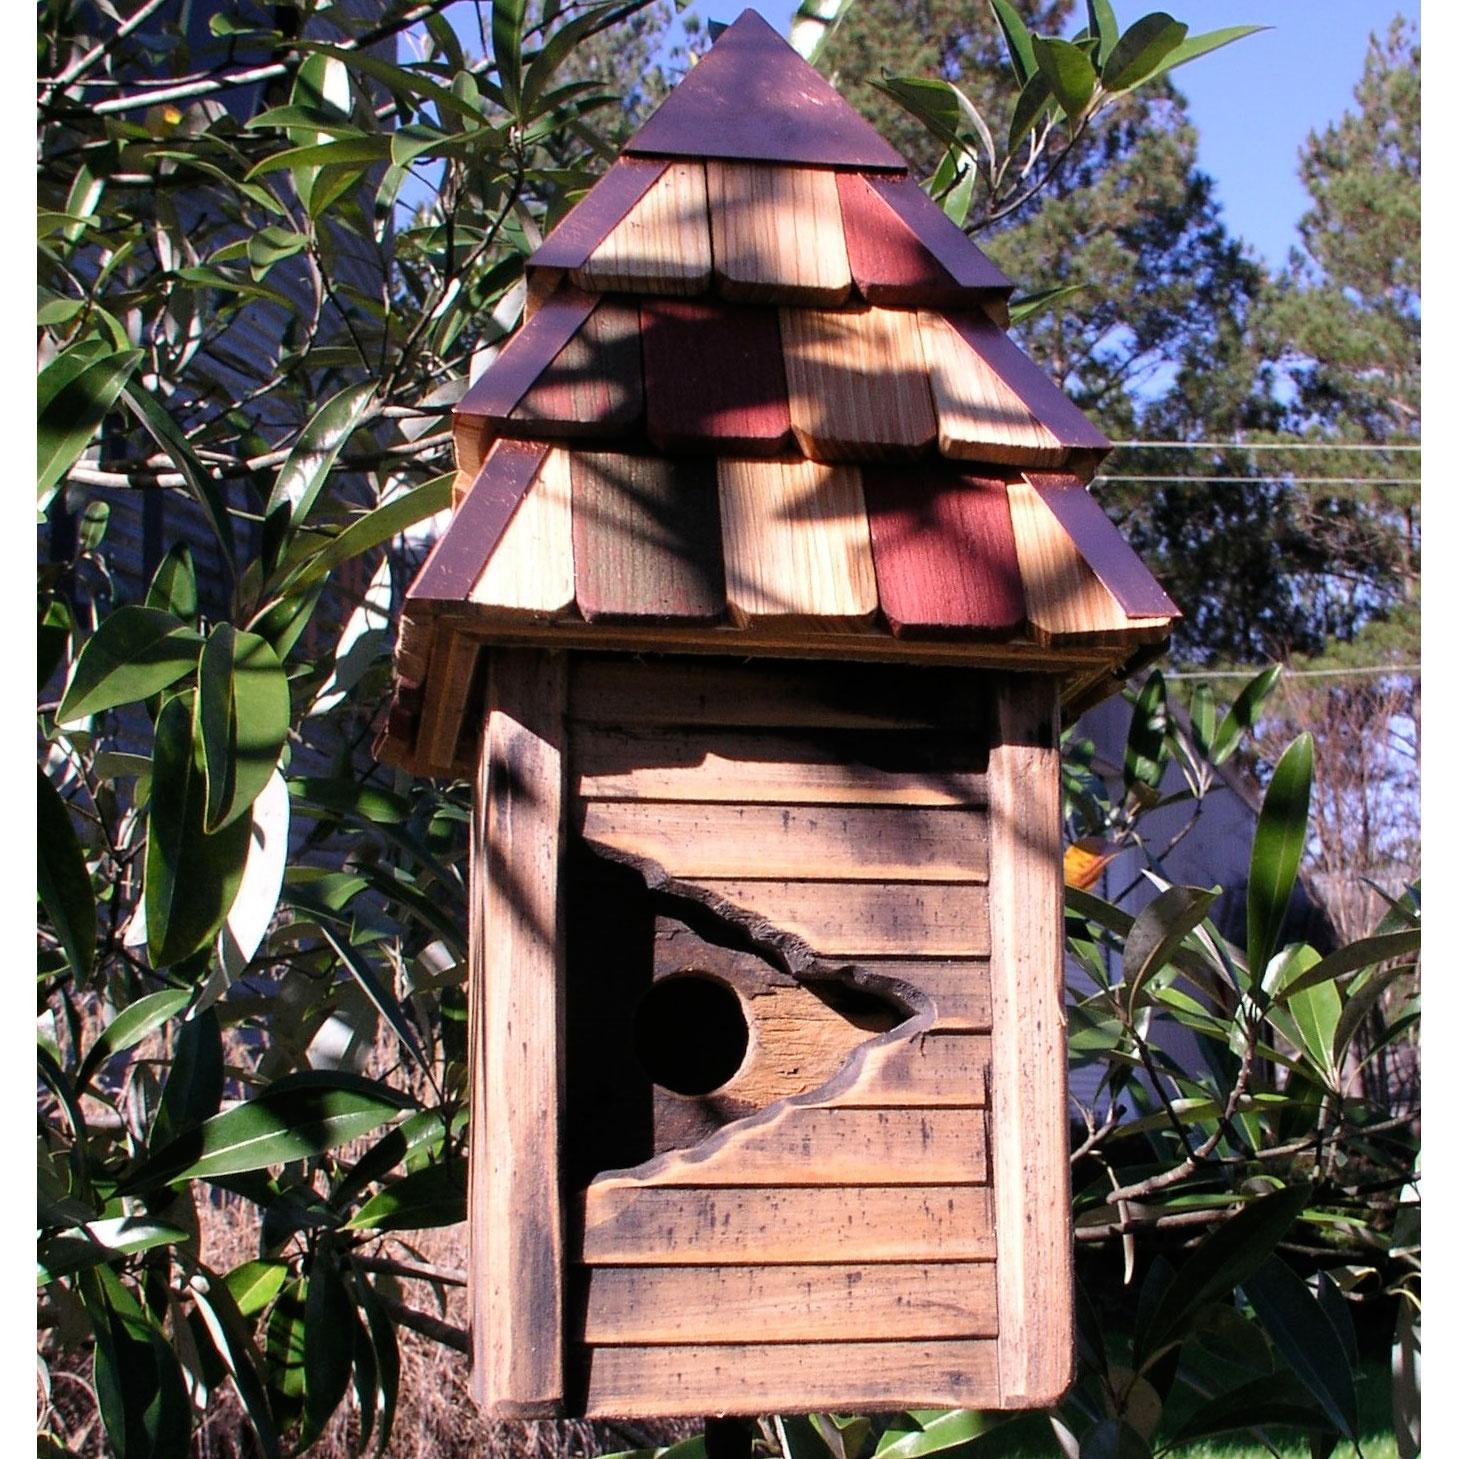 Vintage Gatehouse Rustic Wooden Bird House Yard Envy